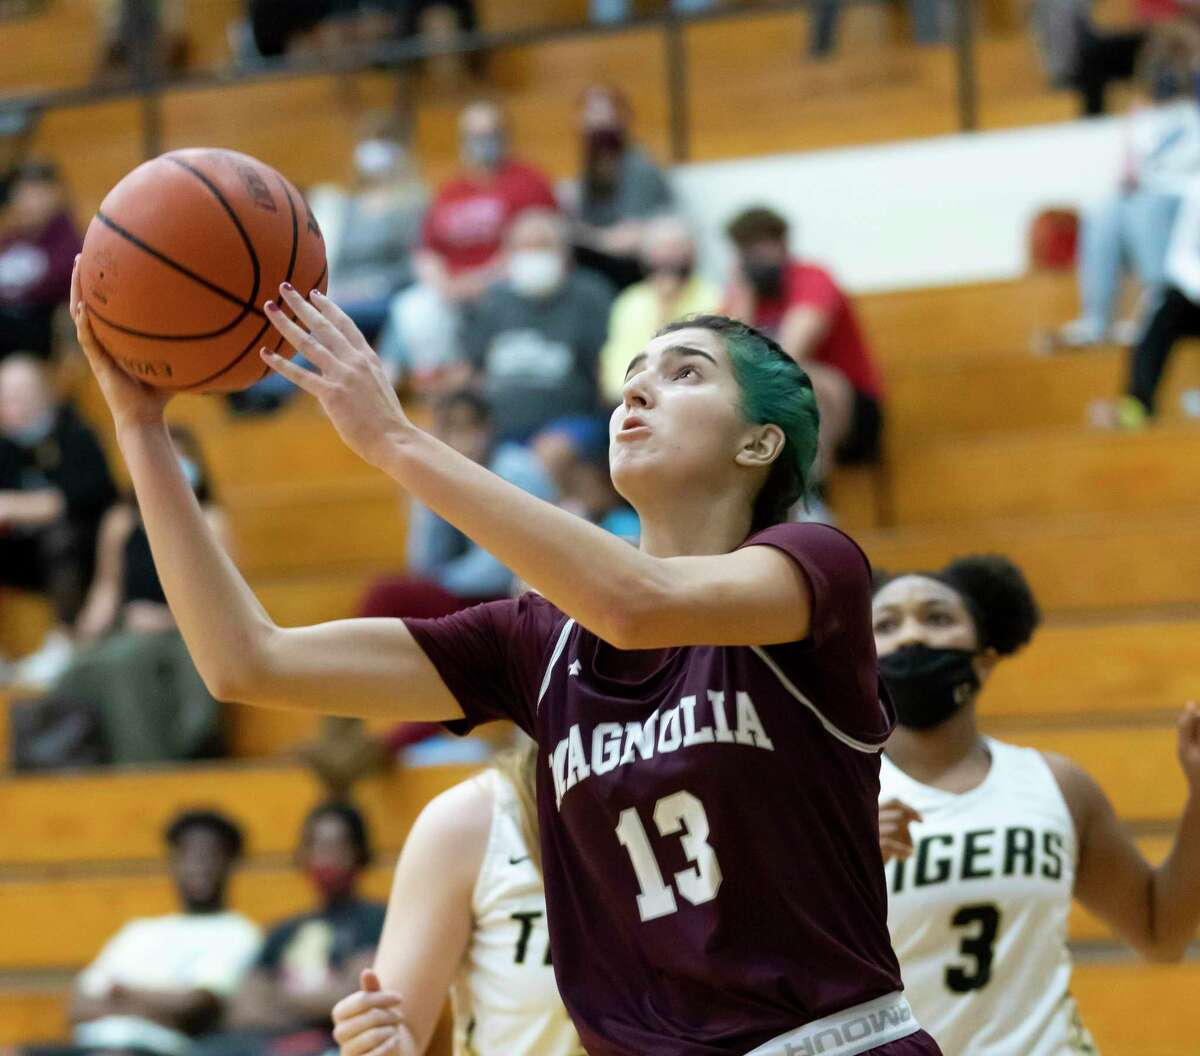 In this file photo, Magnolia forward Gabrielle Huetter (13) shoots for the basket during the first quarter of a non-district game in Porter Gym at Conroe High School, Tuesday, Dec. 29, 2020, in Conroe.